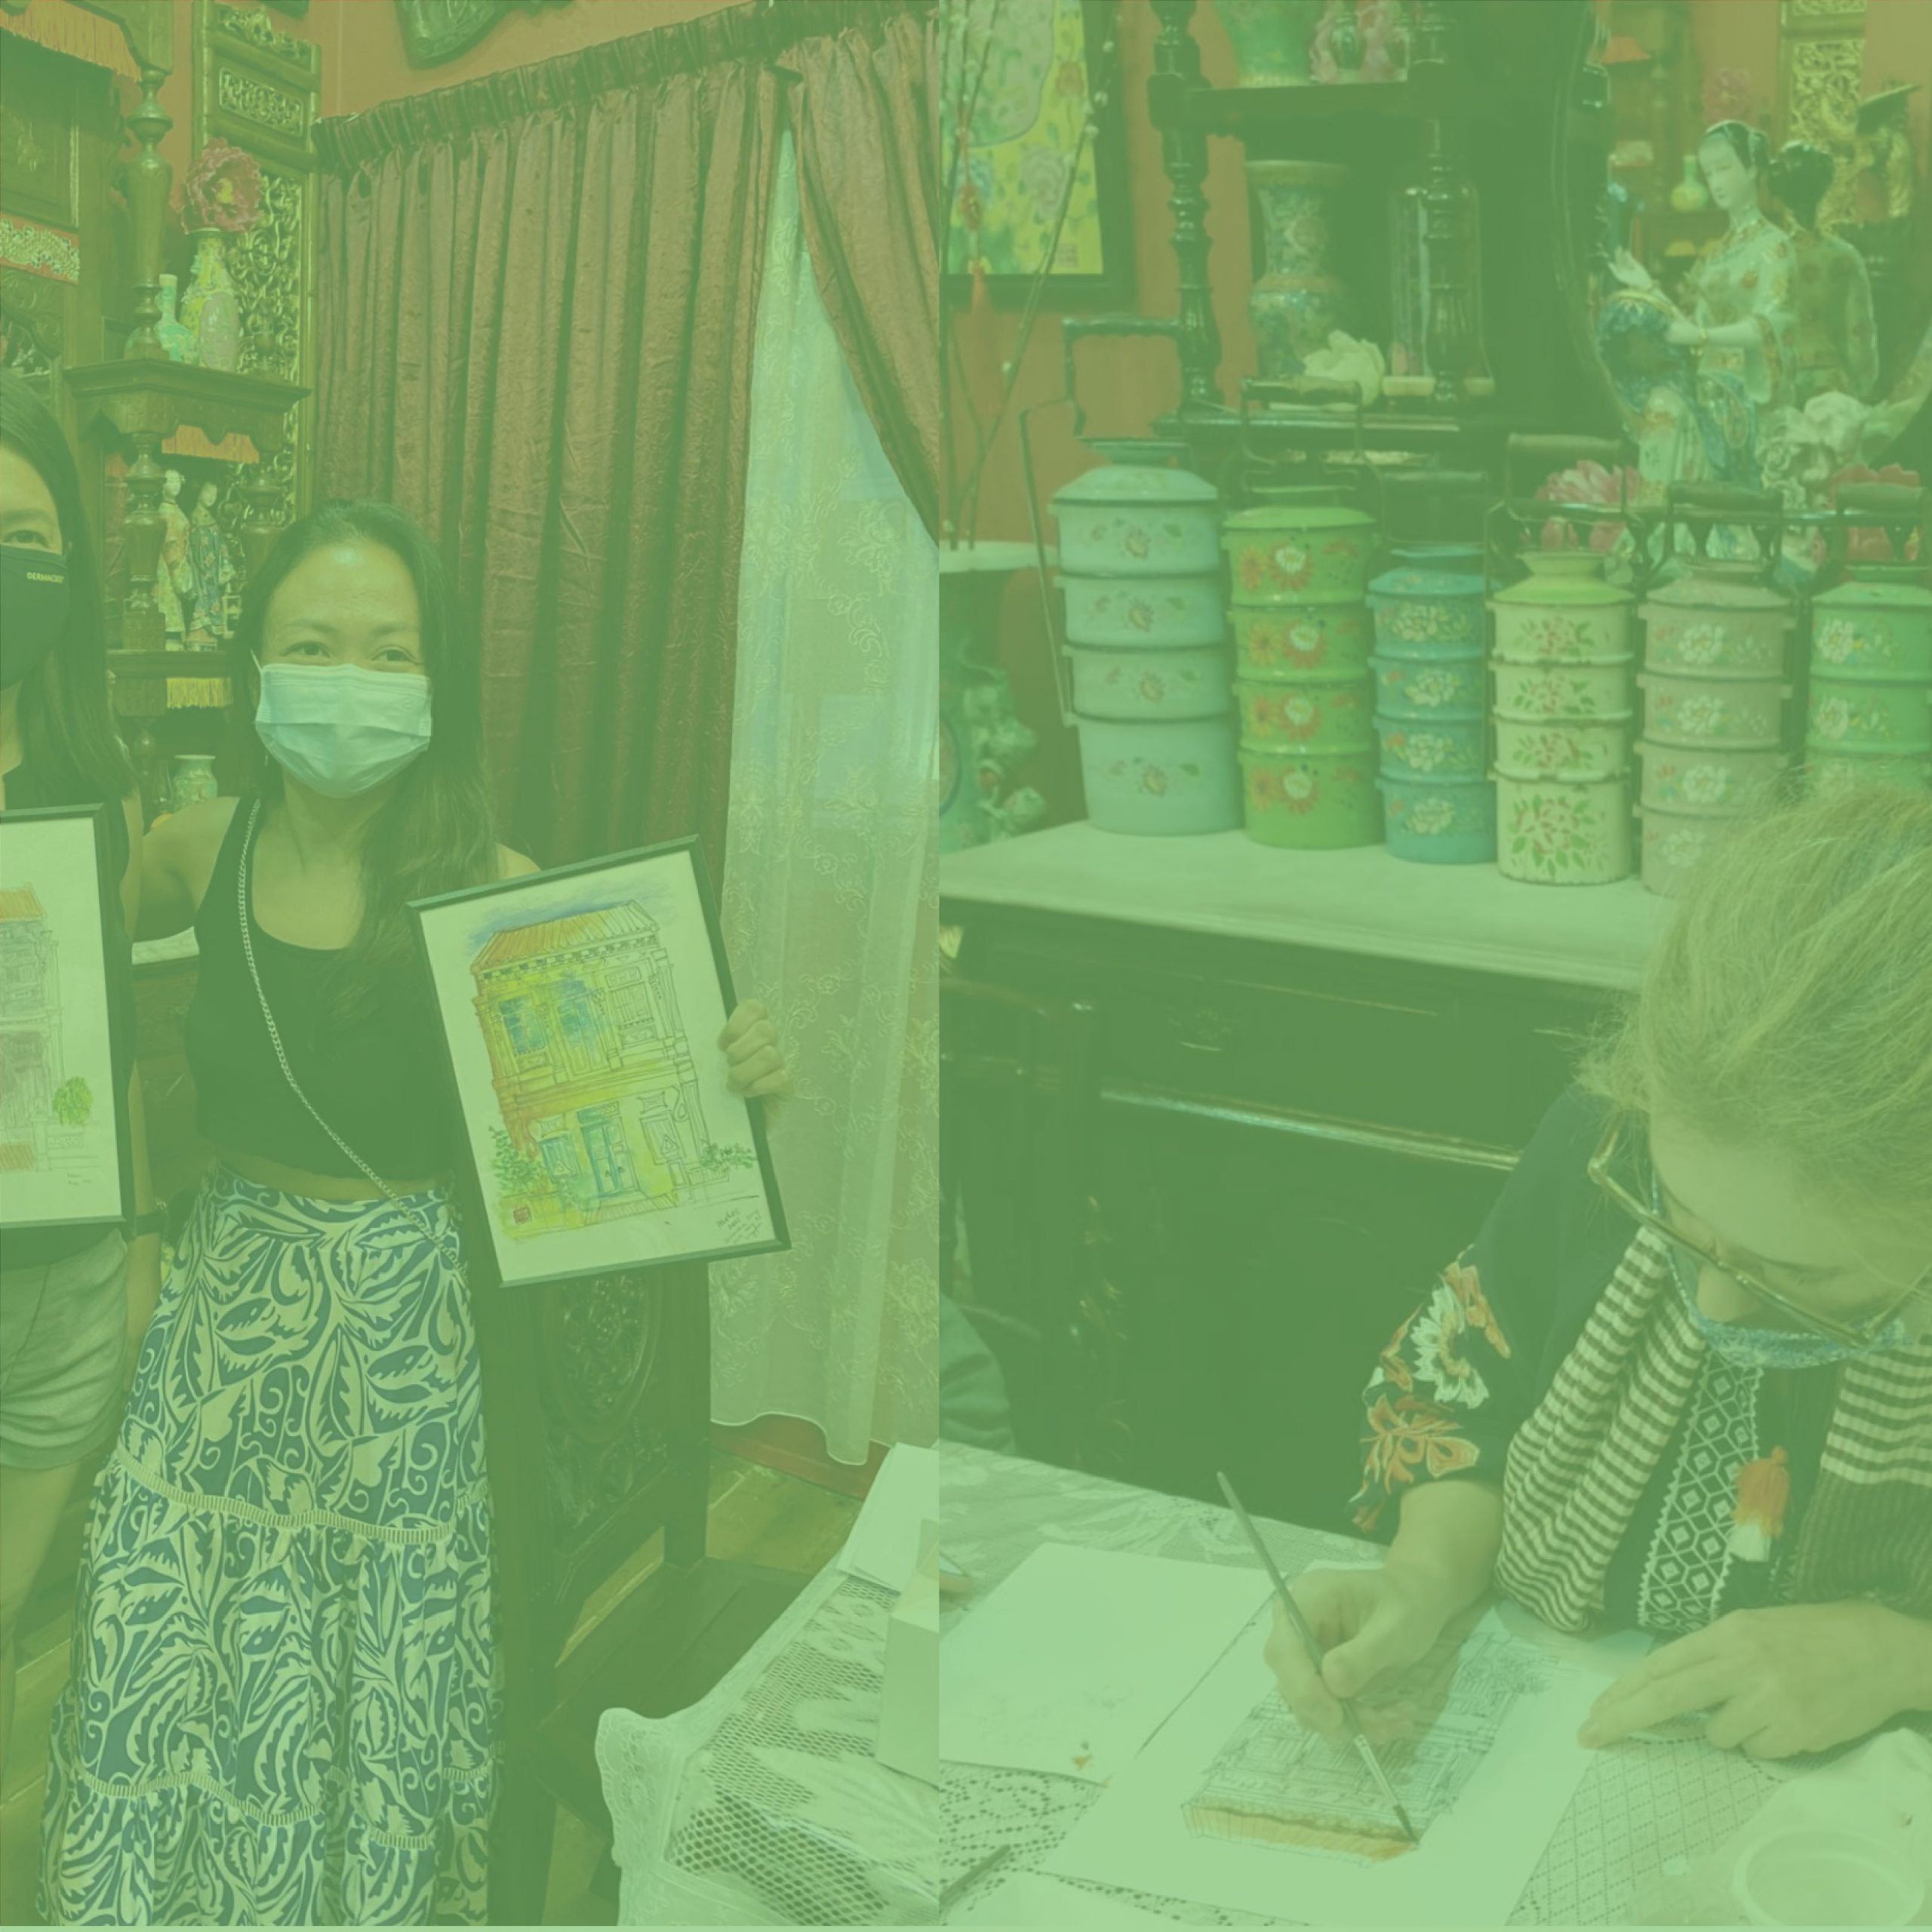 Peranakan Discoveries : The Art of Shophouse Painting